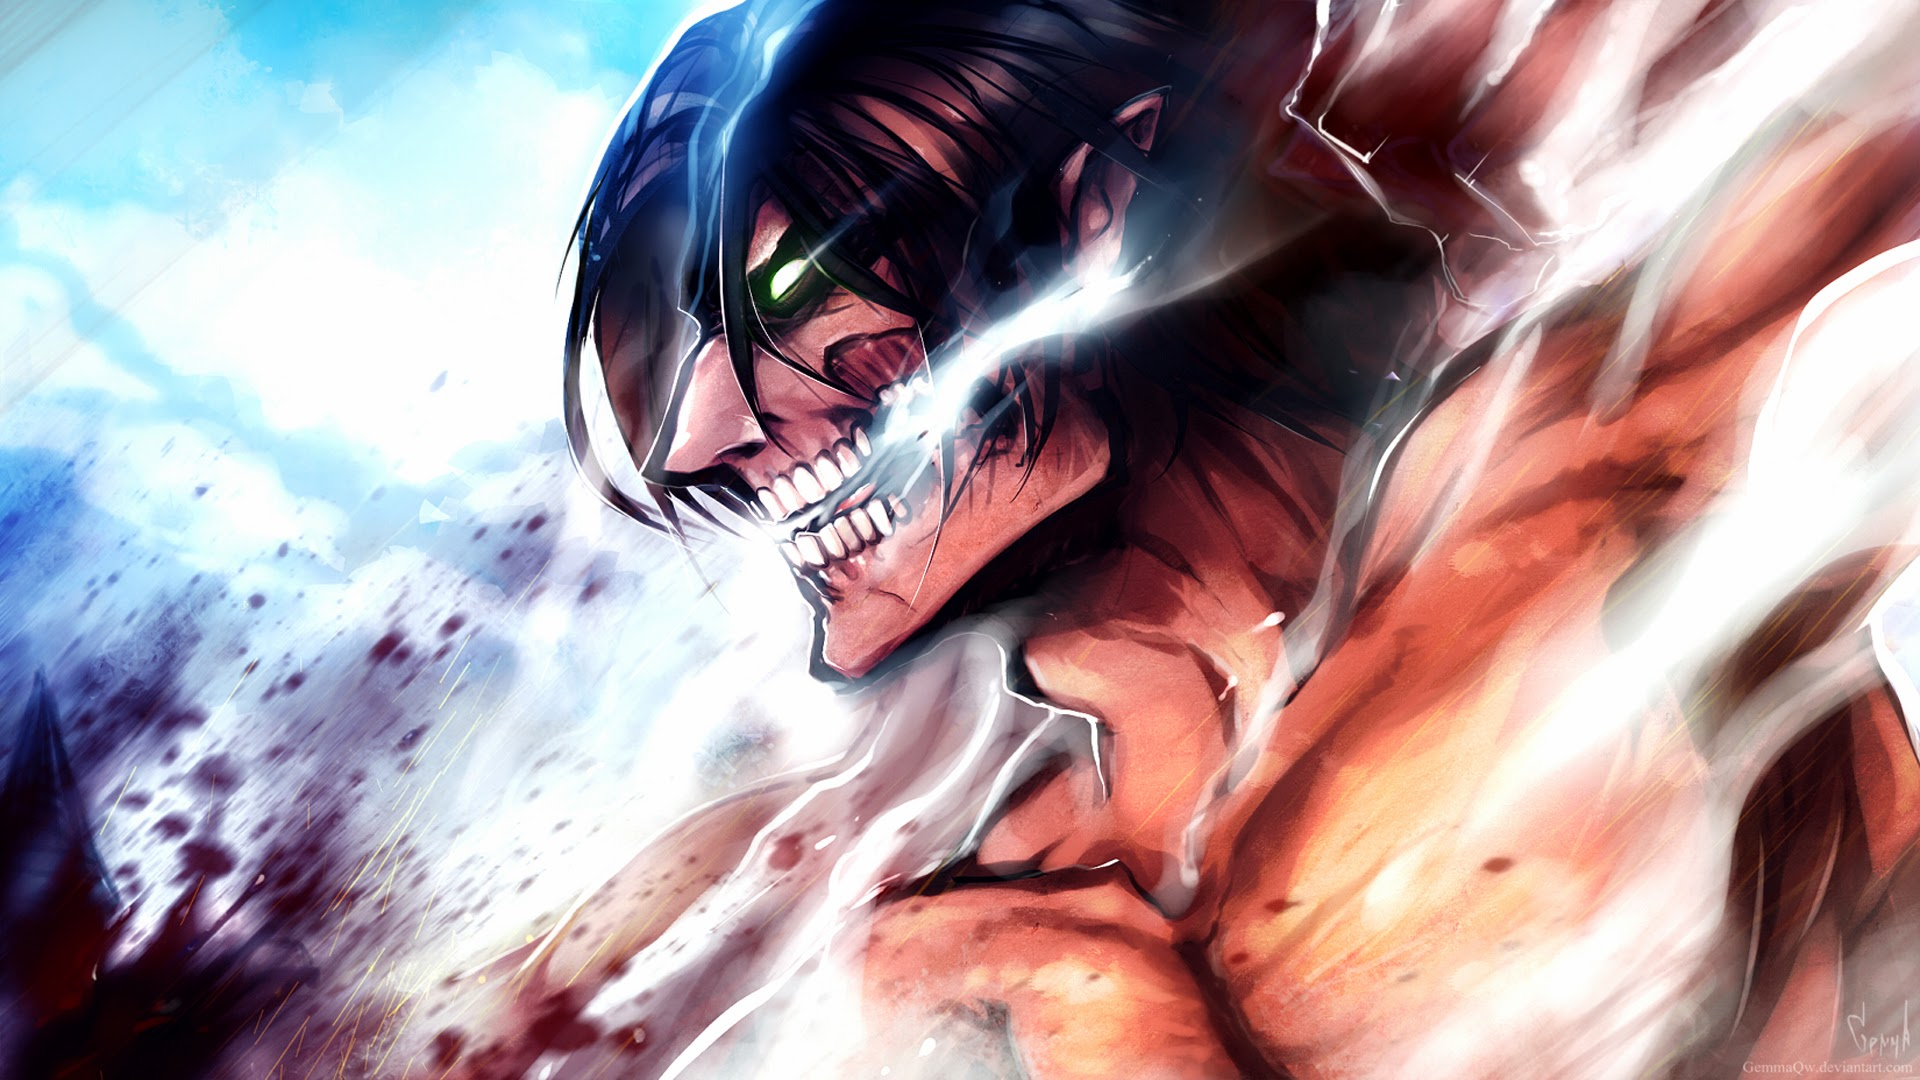 Image rogue titan eren jaeger gemmaqw hd wallpaper 1920x1080g rogue titan eren jaeger gemmaqw hd wallpaper 1920x1080g voltagebd Image collections